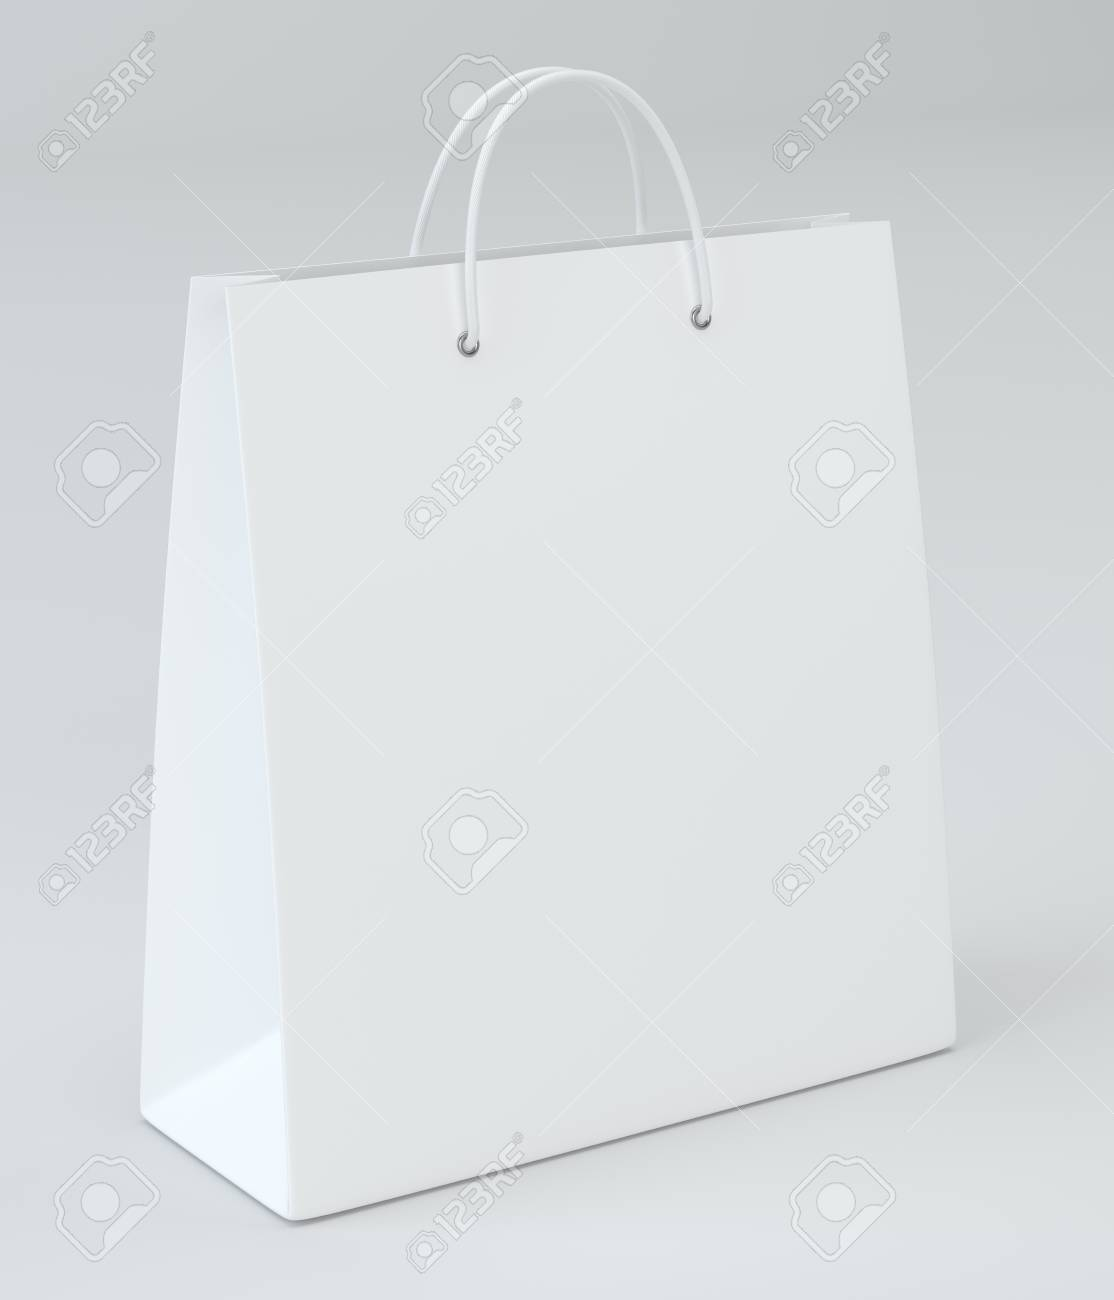 Empty Shopping Bag for advertising and branding  3d rendering